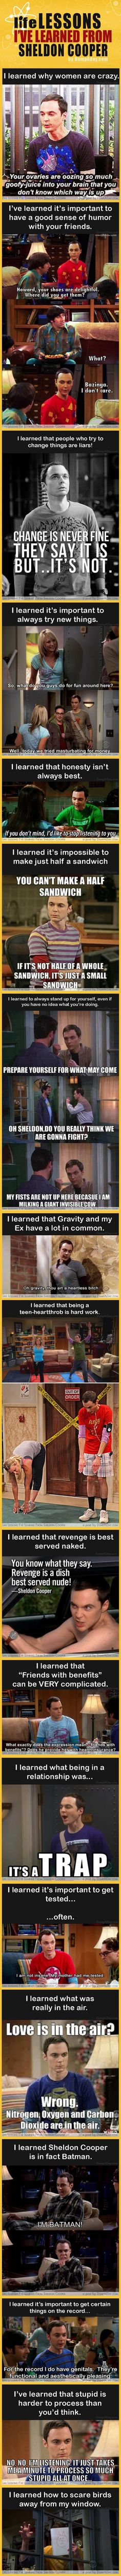 Life lessons i learned from sheldon cooper...